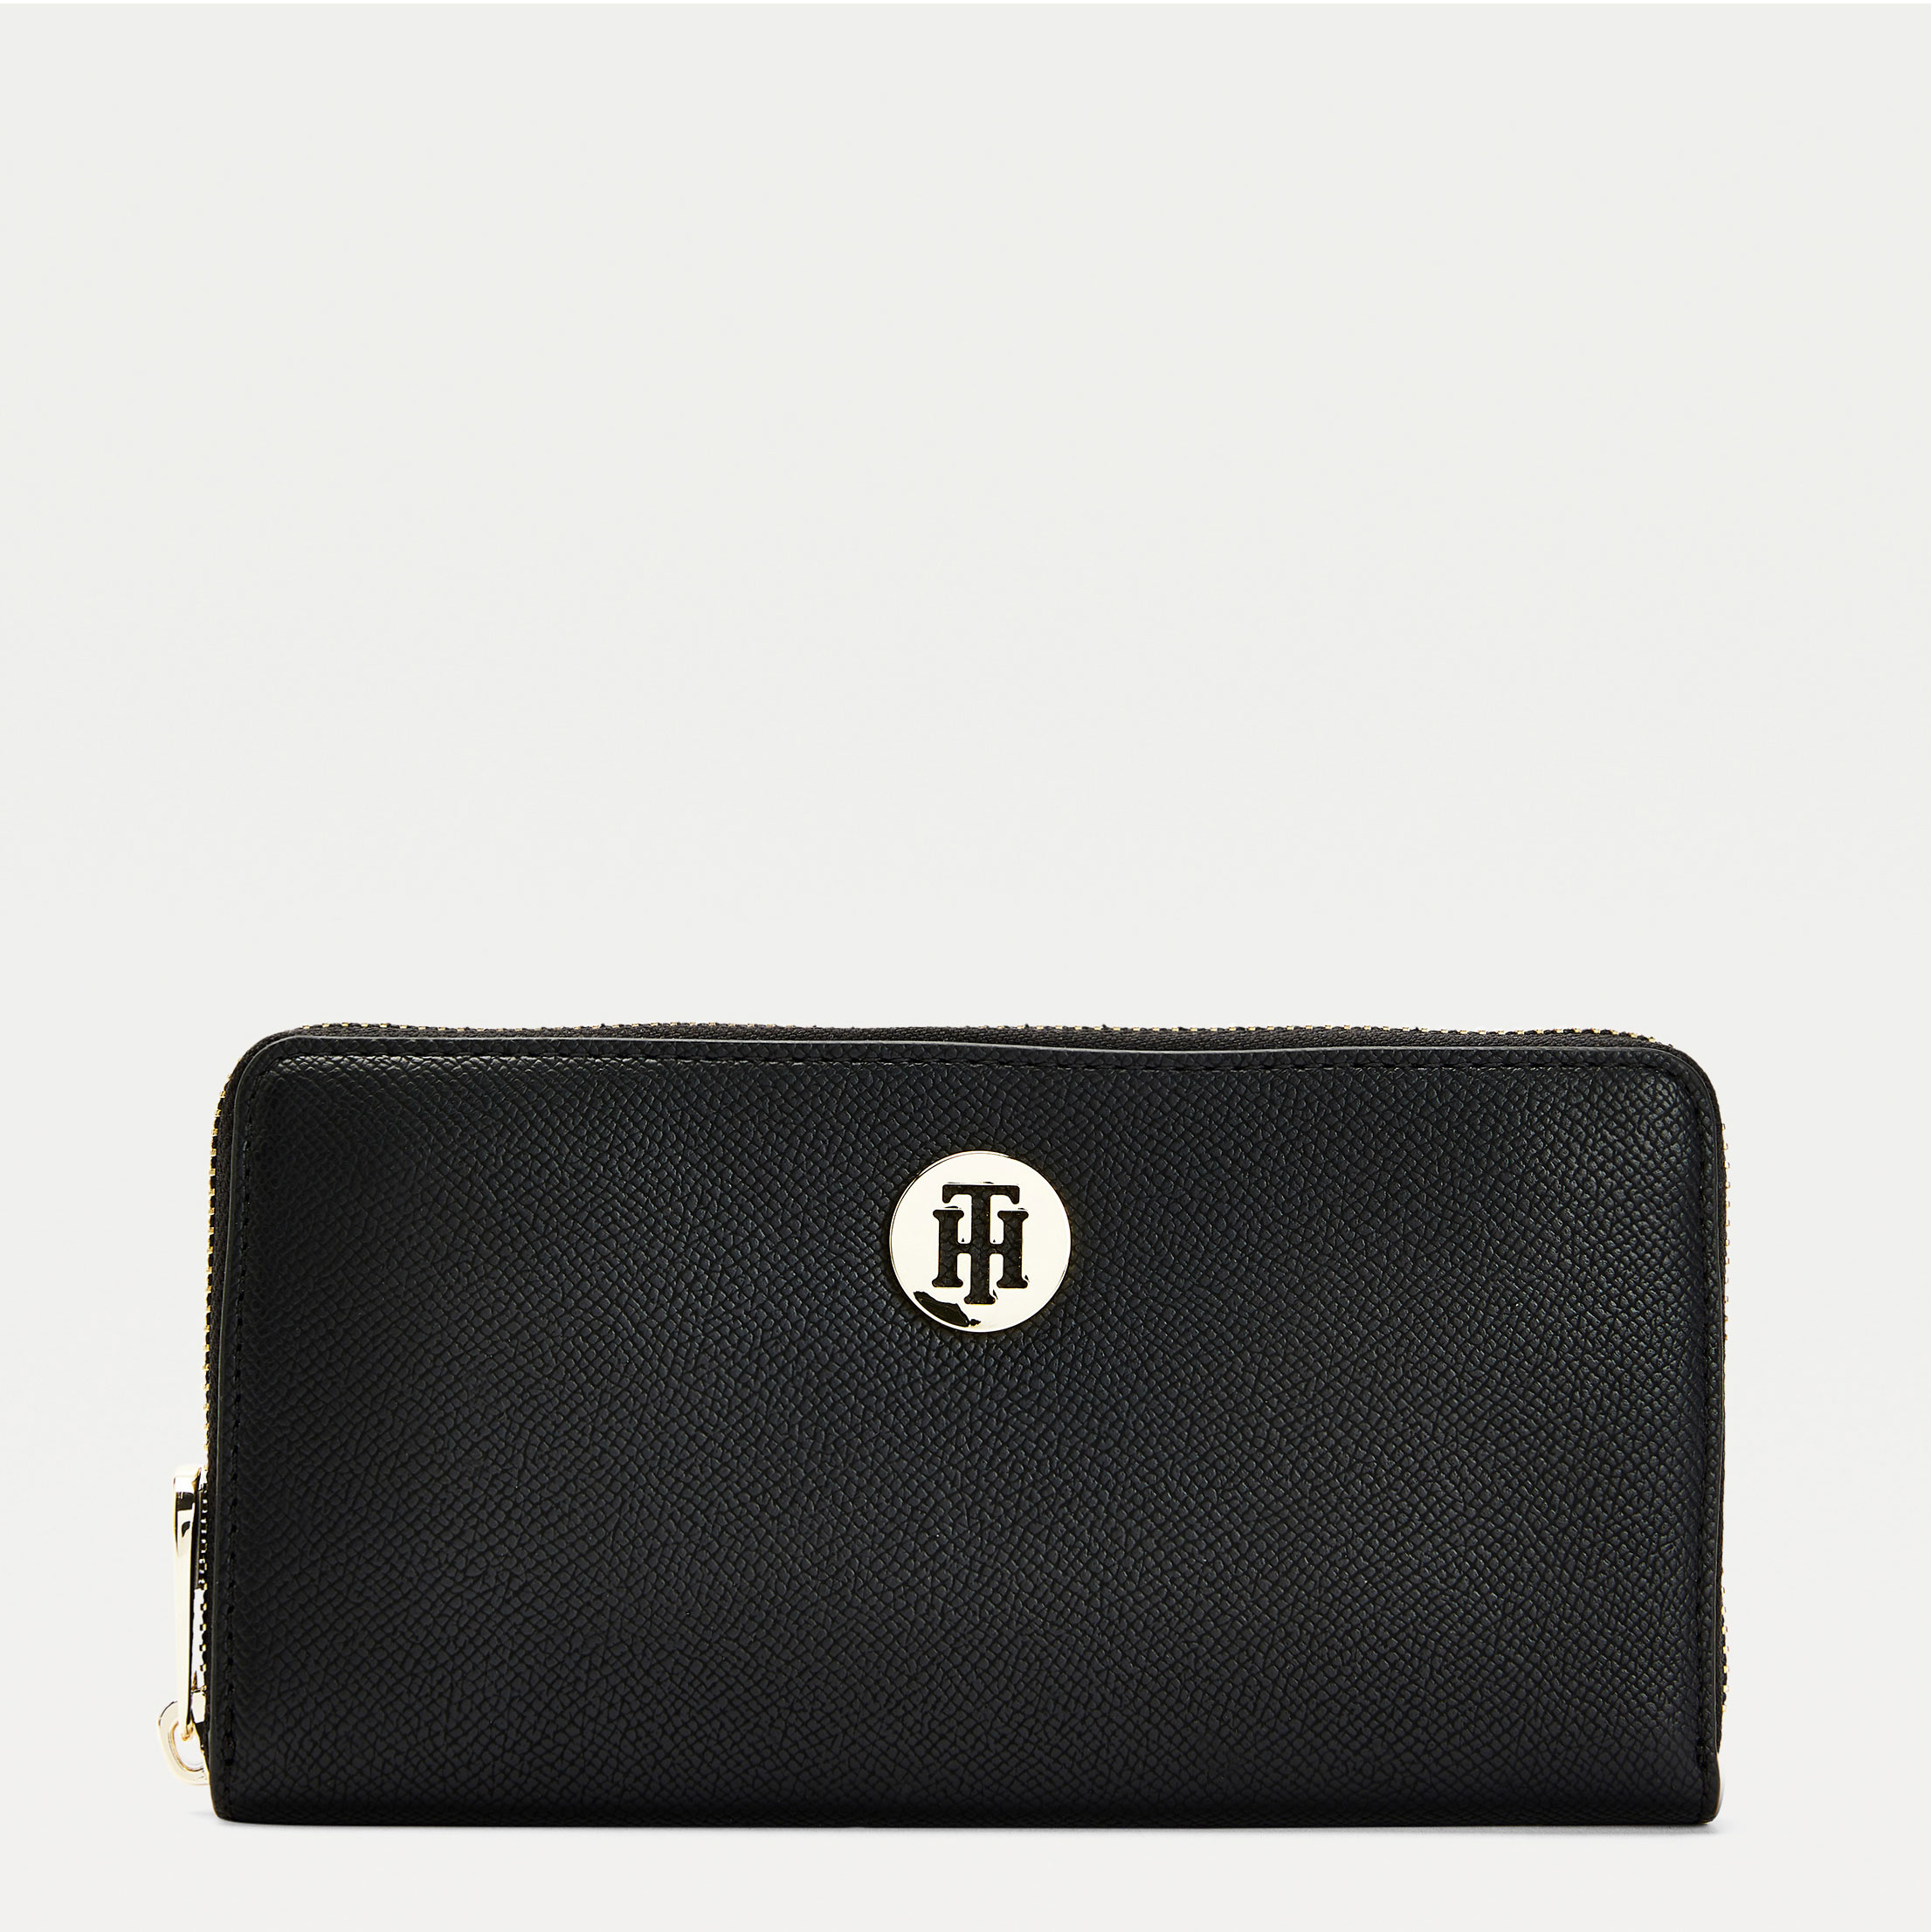 TOMMY HILFIGER Marroquinería Billetero Honey Large Za AW0AW09534-BDS